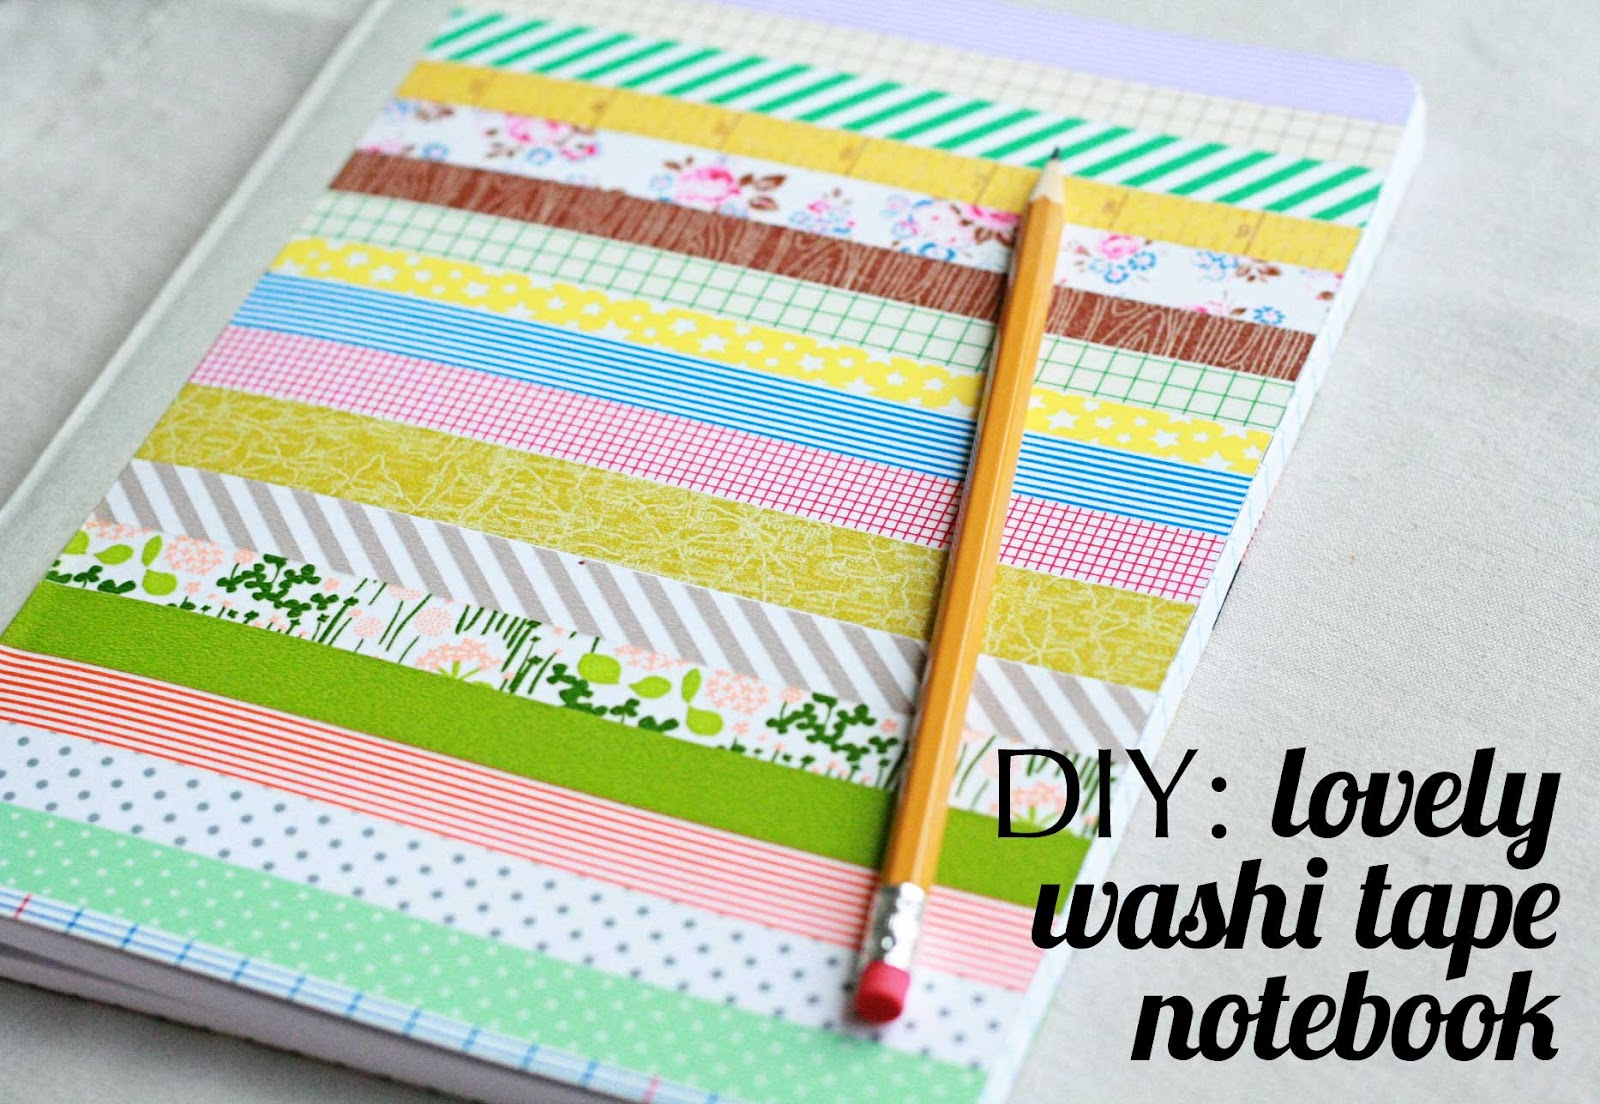 the creative place diy lovely washi tape notebook. Black Bedroom Furniture Sets. Home Design Ideas